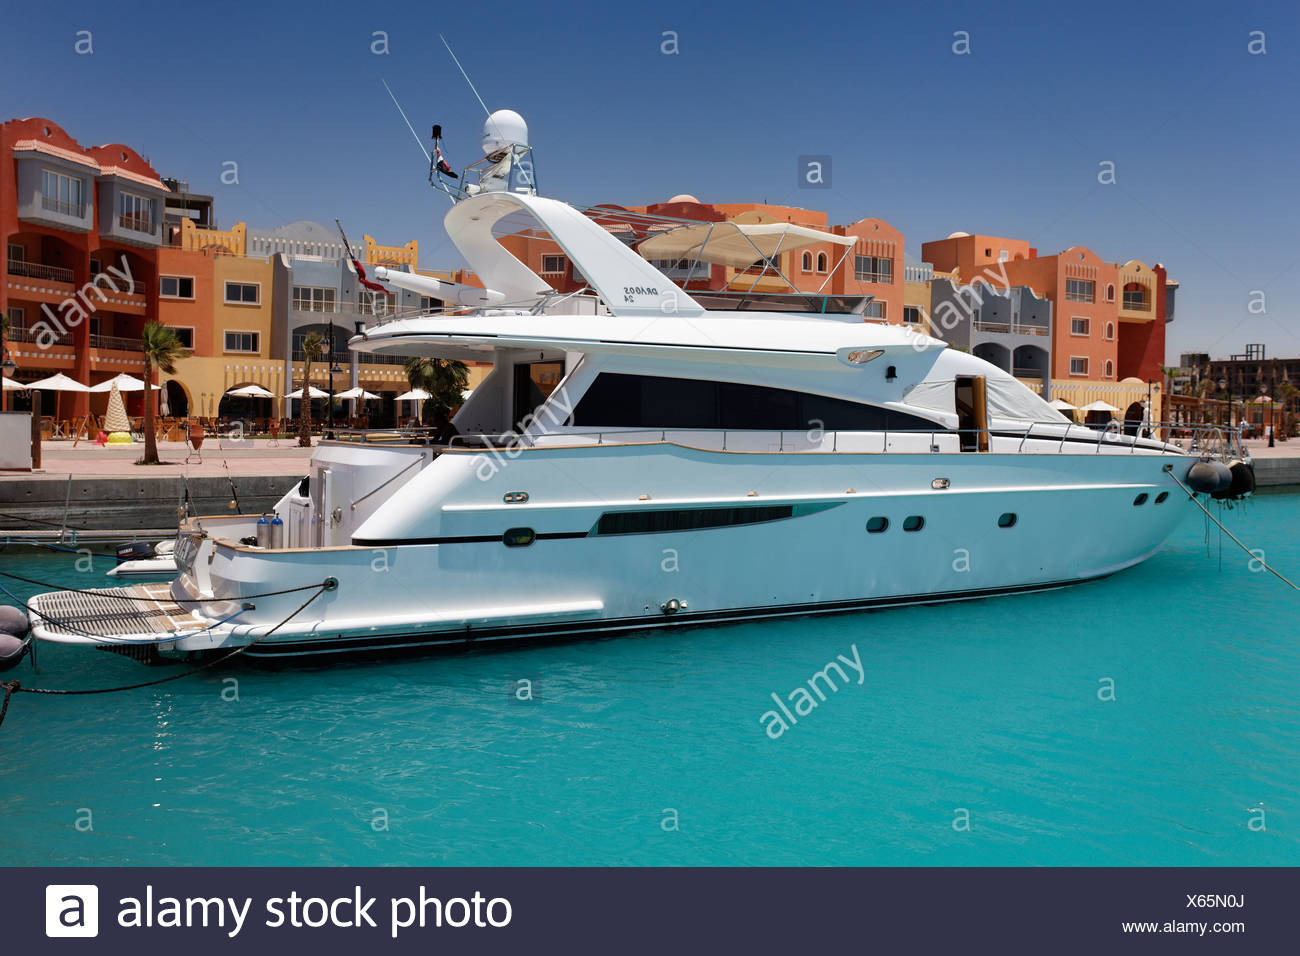 Yacht Stock Photos & Yacht Stock Images - Alamy